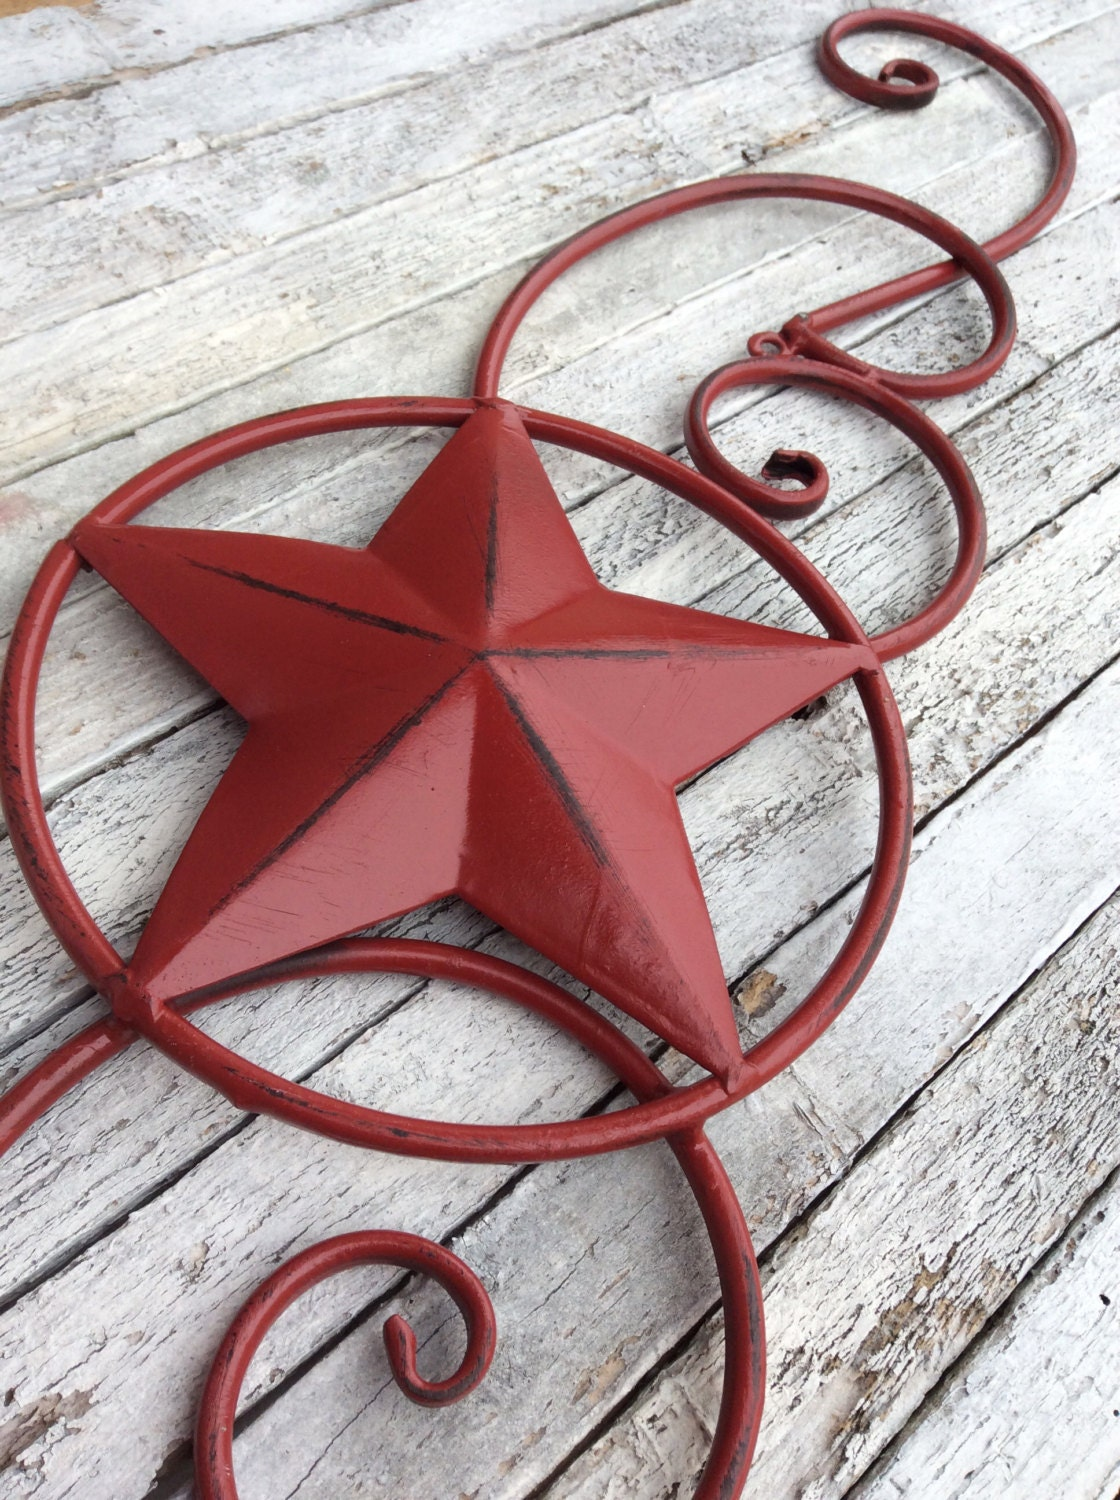 metal star wall decor red home decor texas star by camillacotton. Black Bedroom Furniture Sets. Home Design Ideas